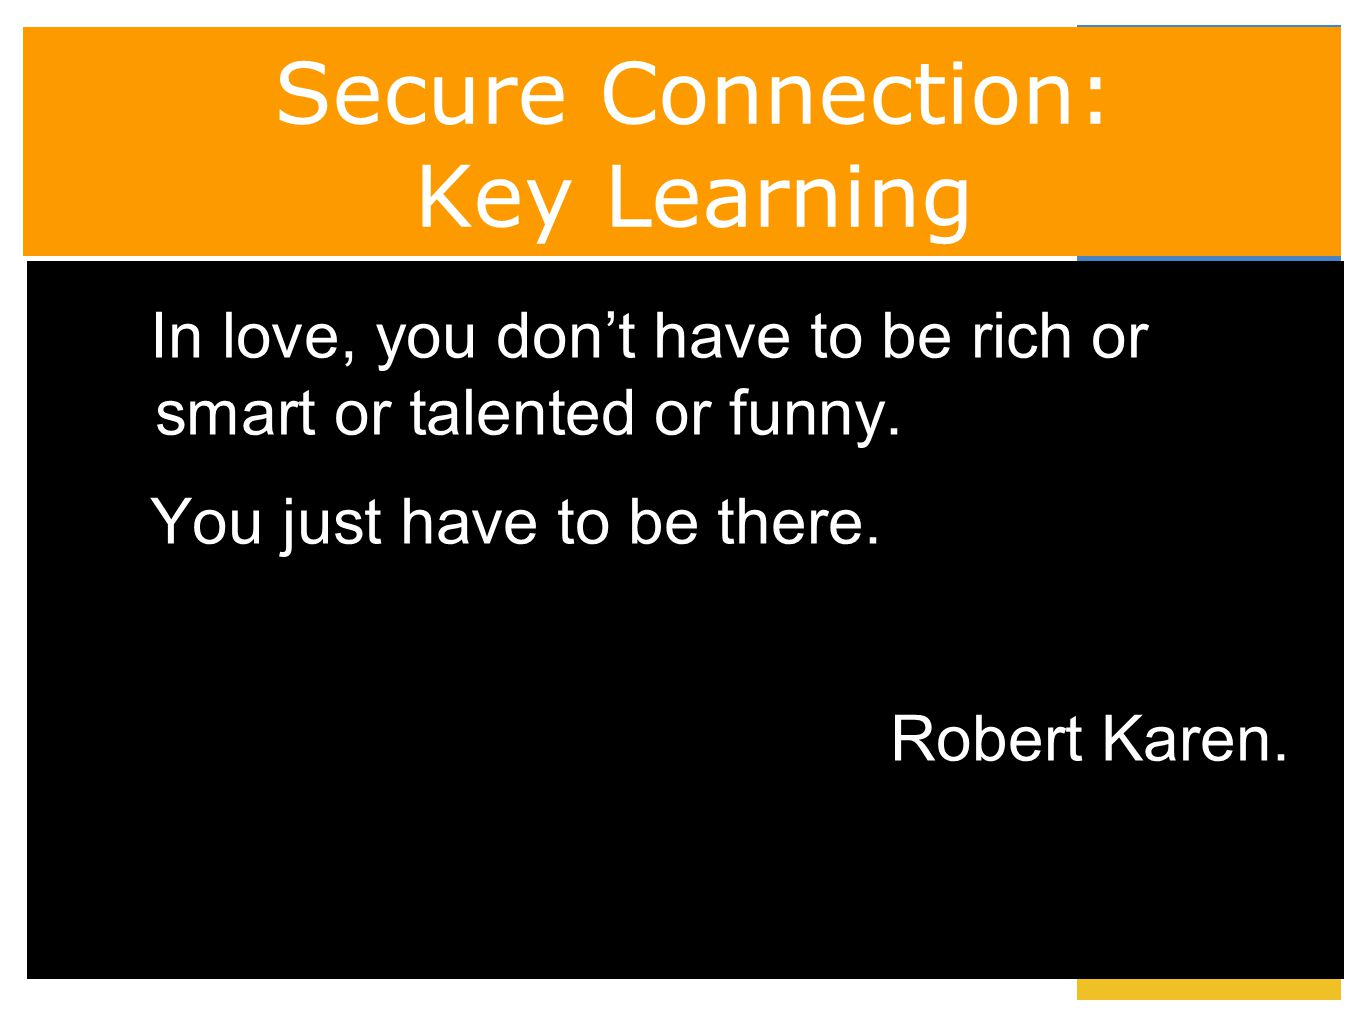 Secure Connection: Key Learning